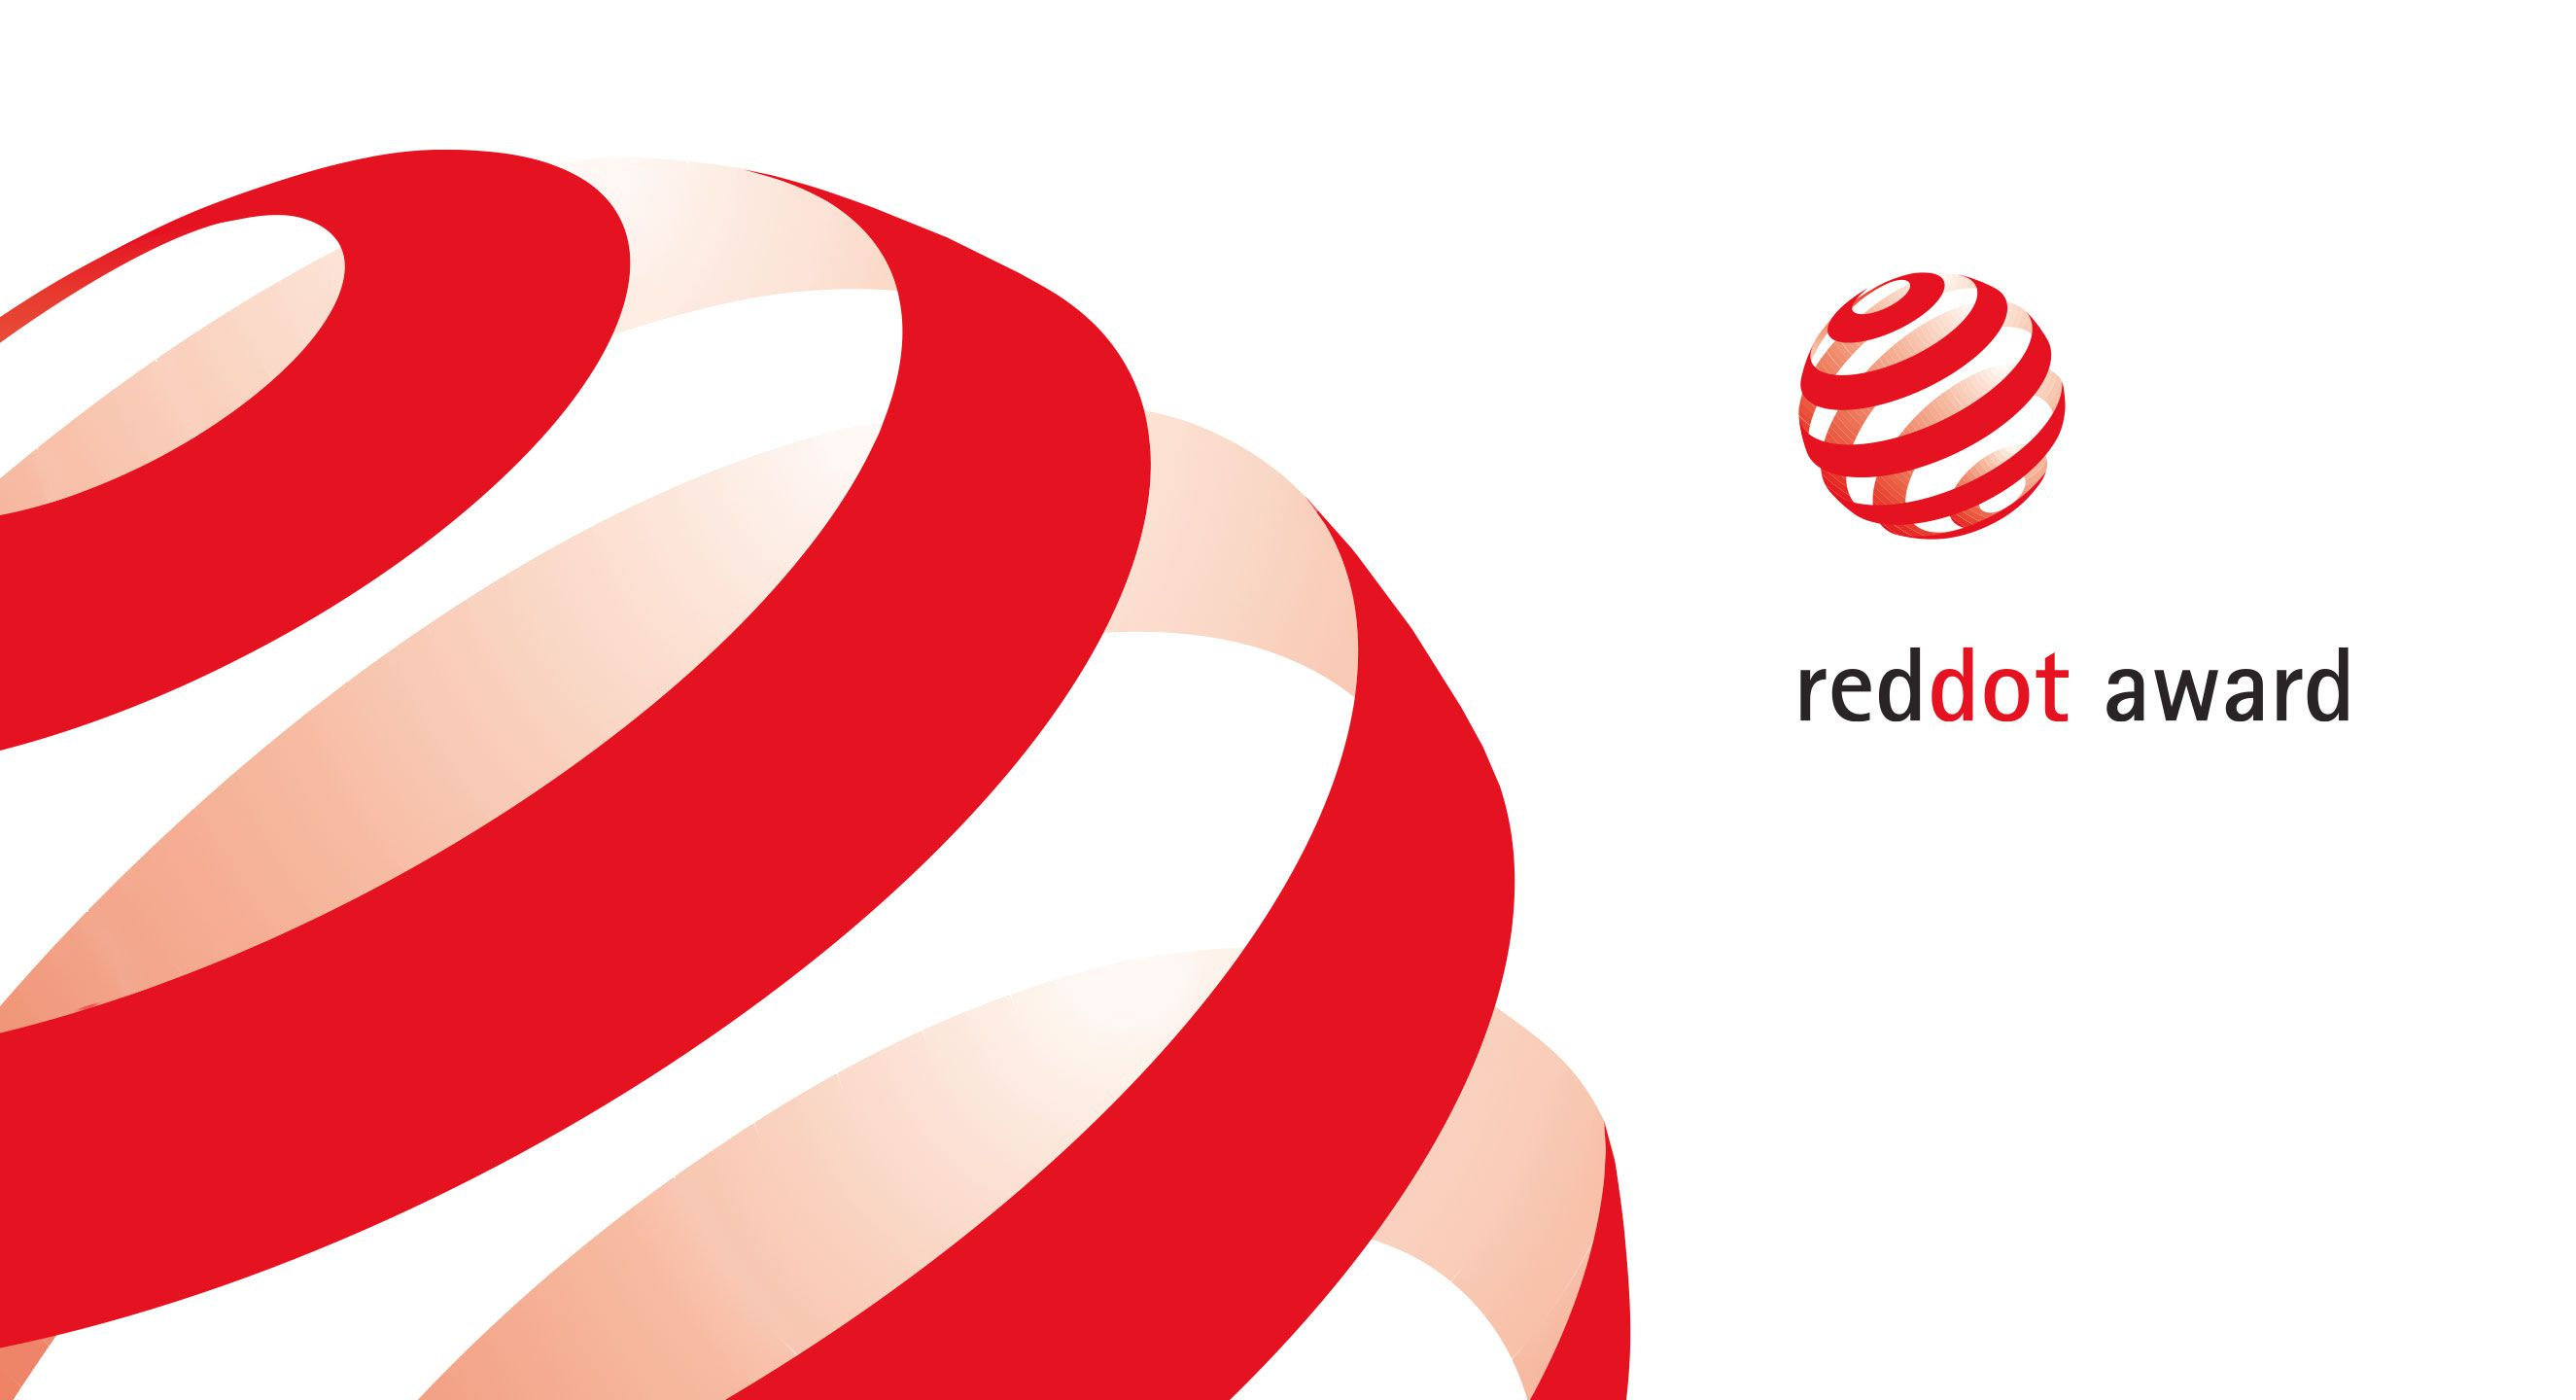 B2C_5_4_2_Red_Dot_Award_Bild_01_Header